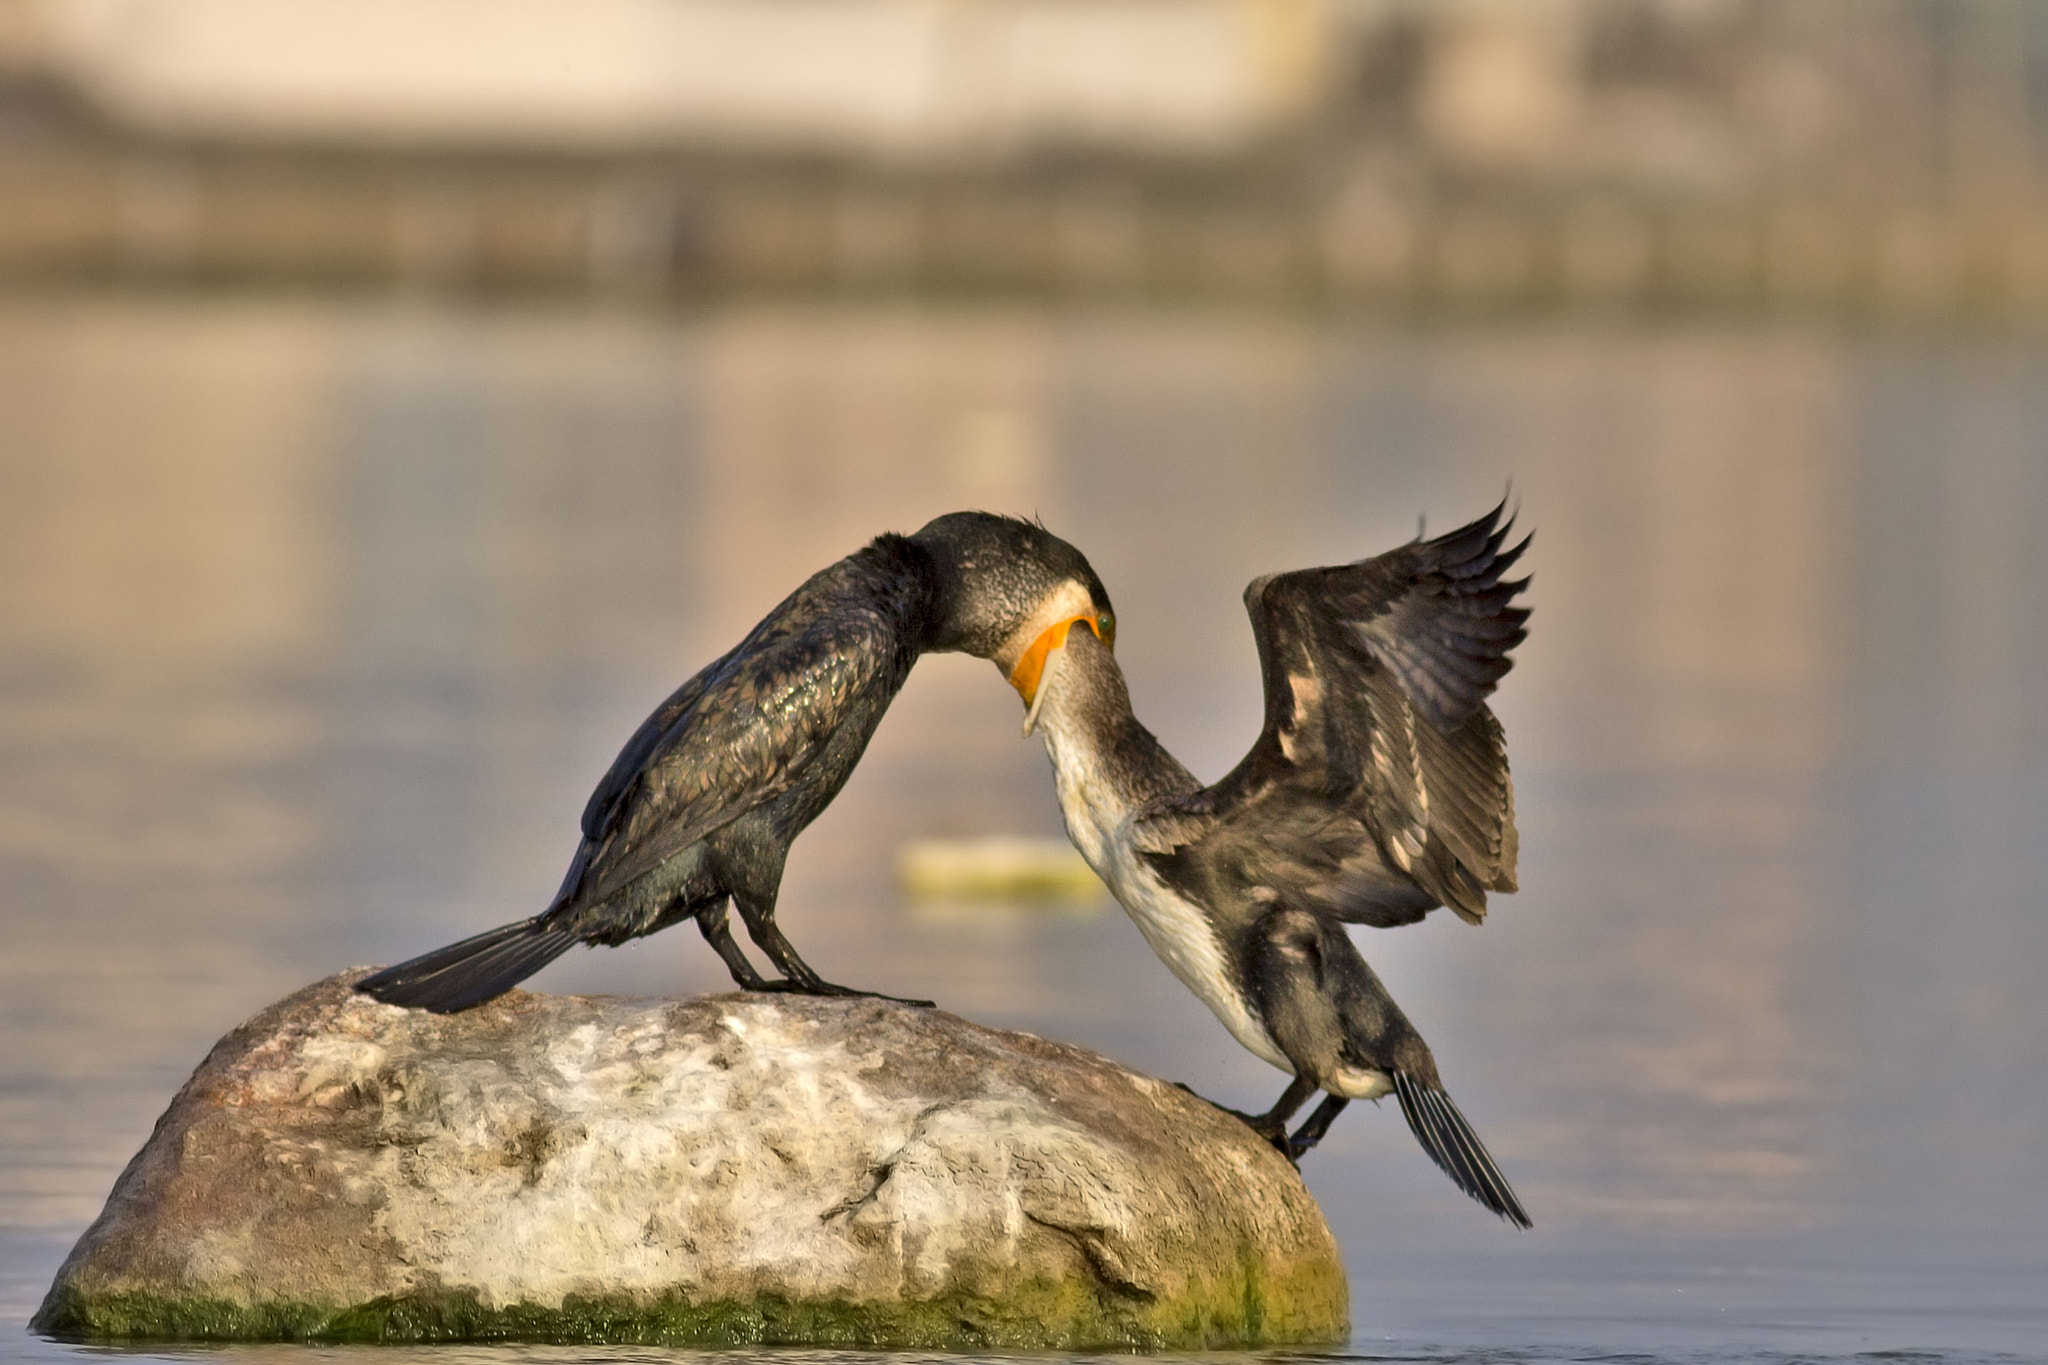 Photograph MOTHER NATURE - CORMORANT FEEDING ITS CHIC by Iqbal Siddiqui on 500px